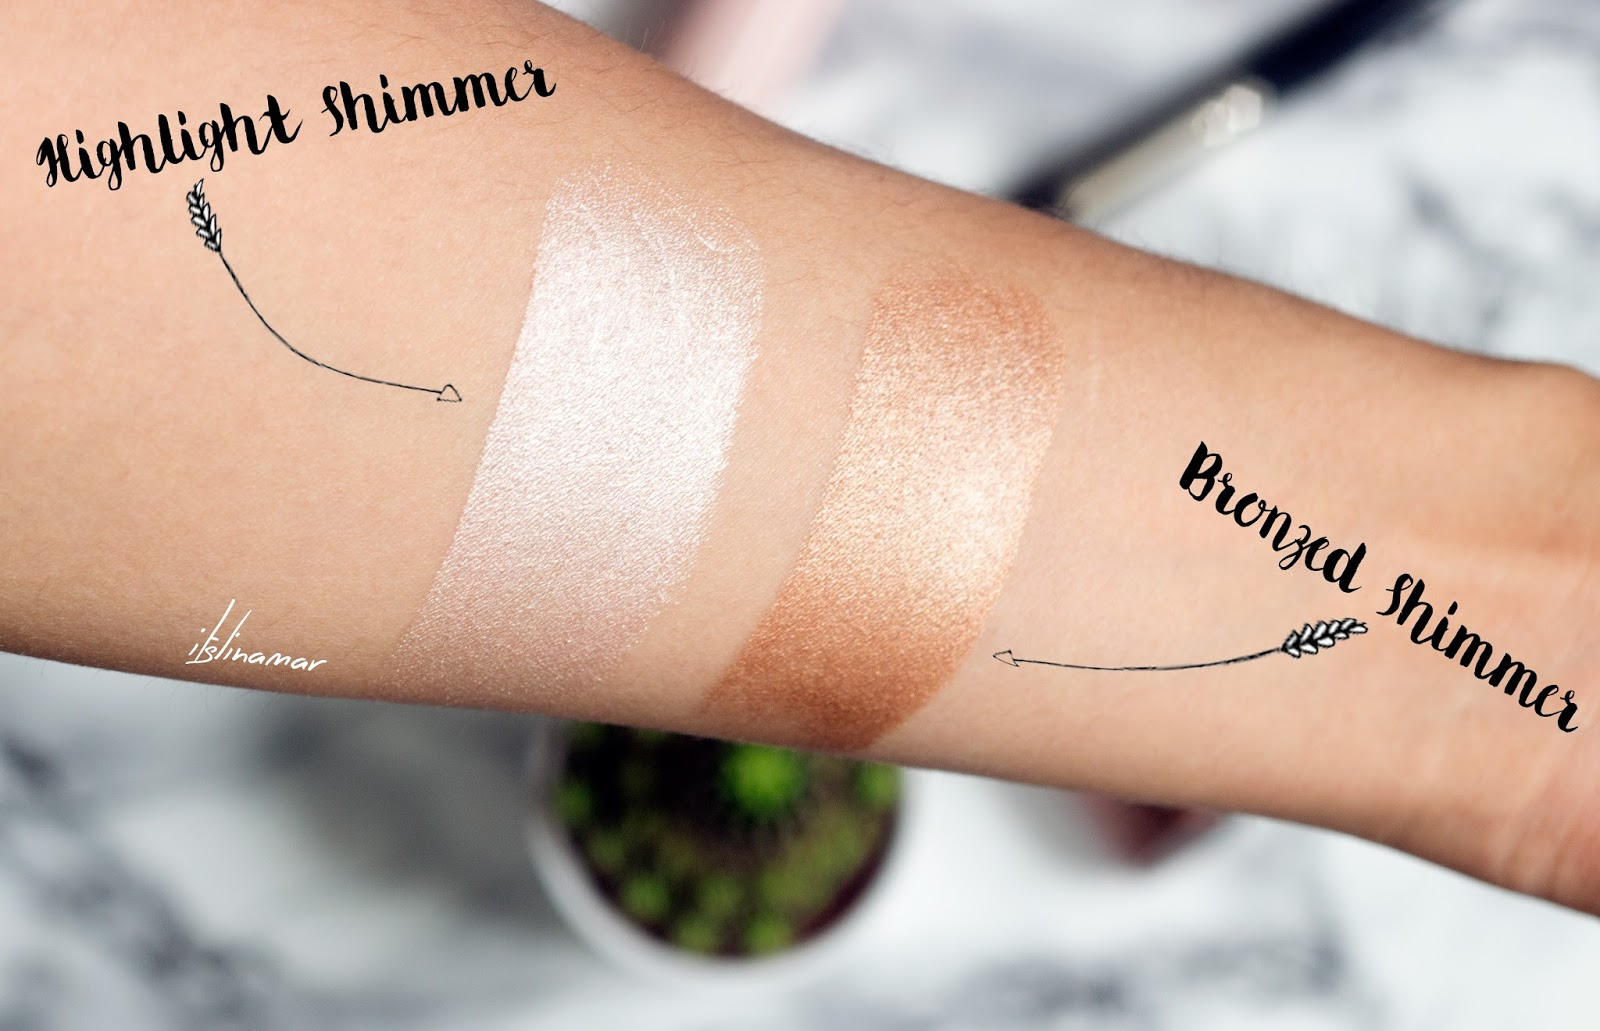 The 163 4 Drugstore Highlighter You Need Itslinamar